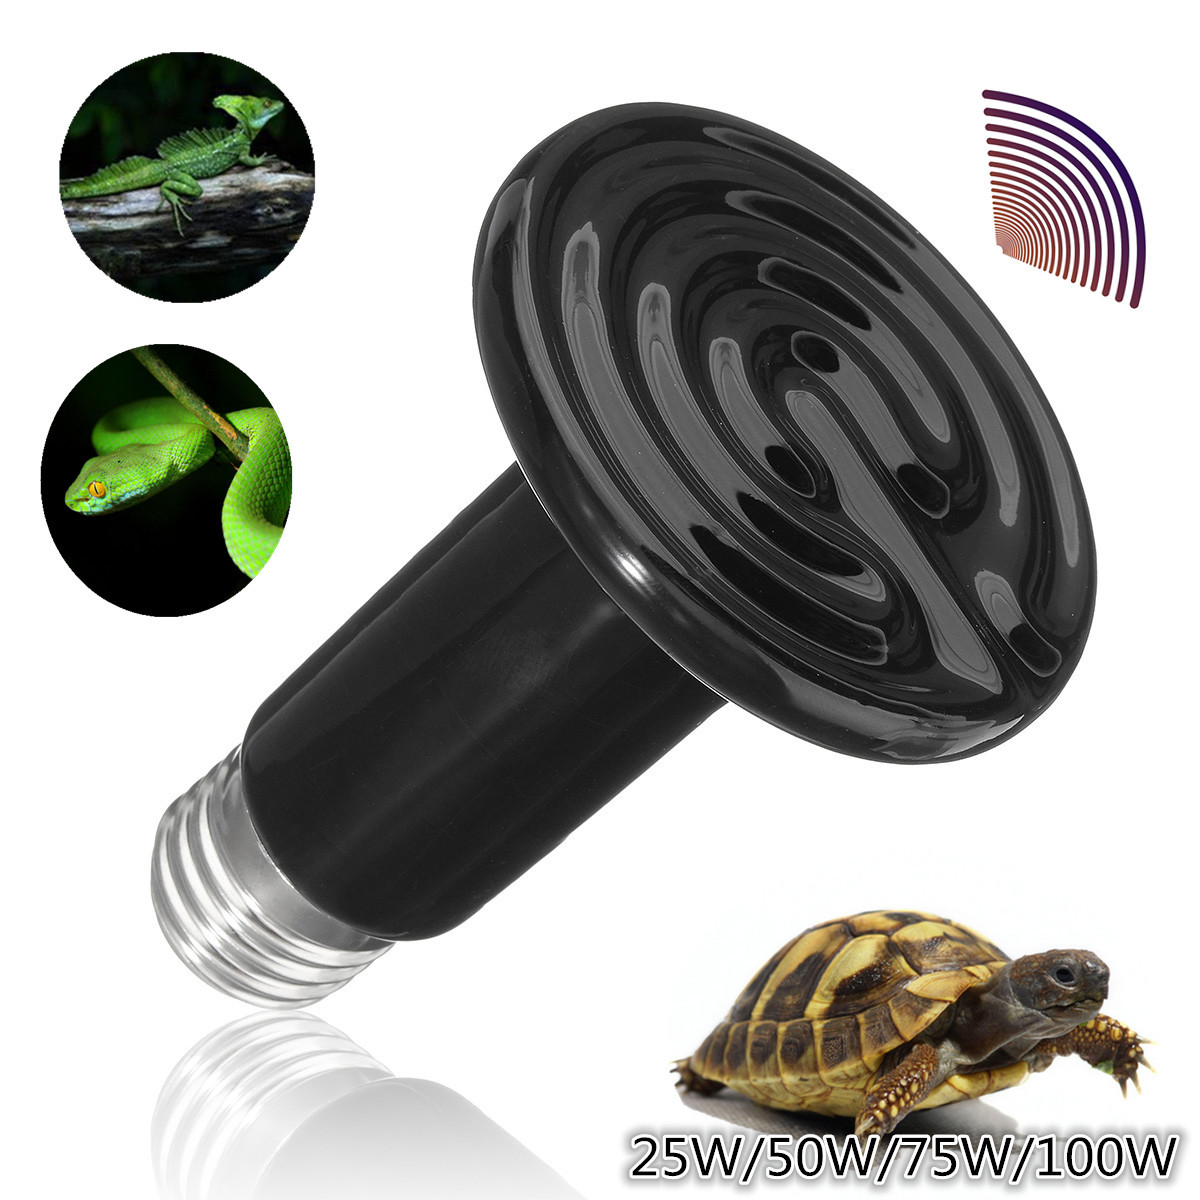 25W 50W 75 W 100W 110V E27 Ceramic Infrared Reptile Heat Emitter Brooder Coop Pet Lamp Bulb Keep Warm in Winter For Reptile Pet Brooder Pet Grow Plant Turtle Zoo